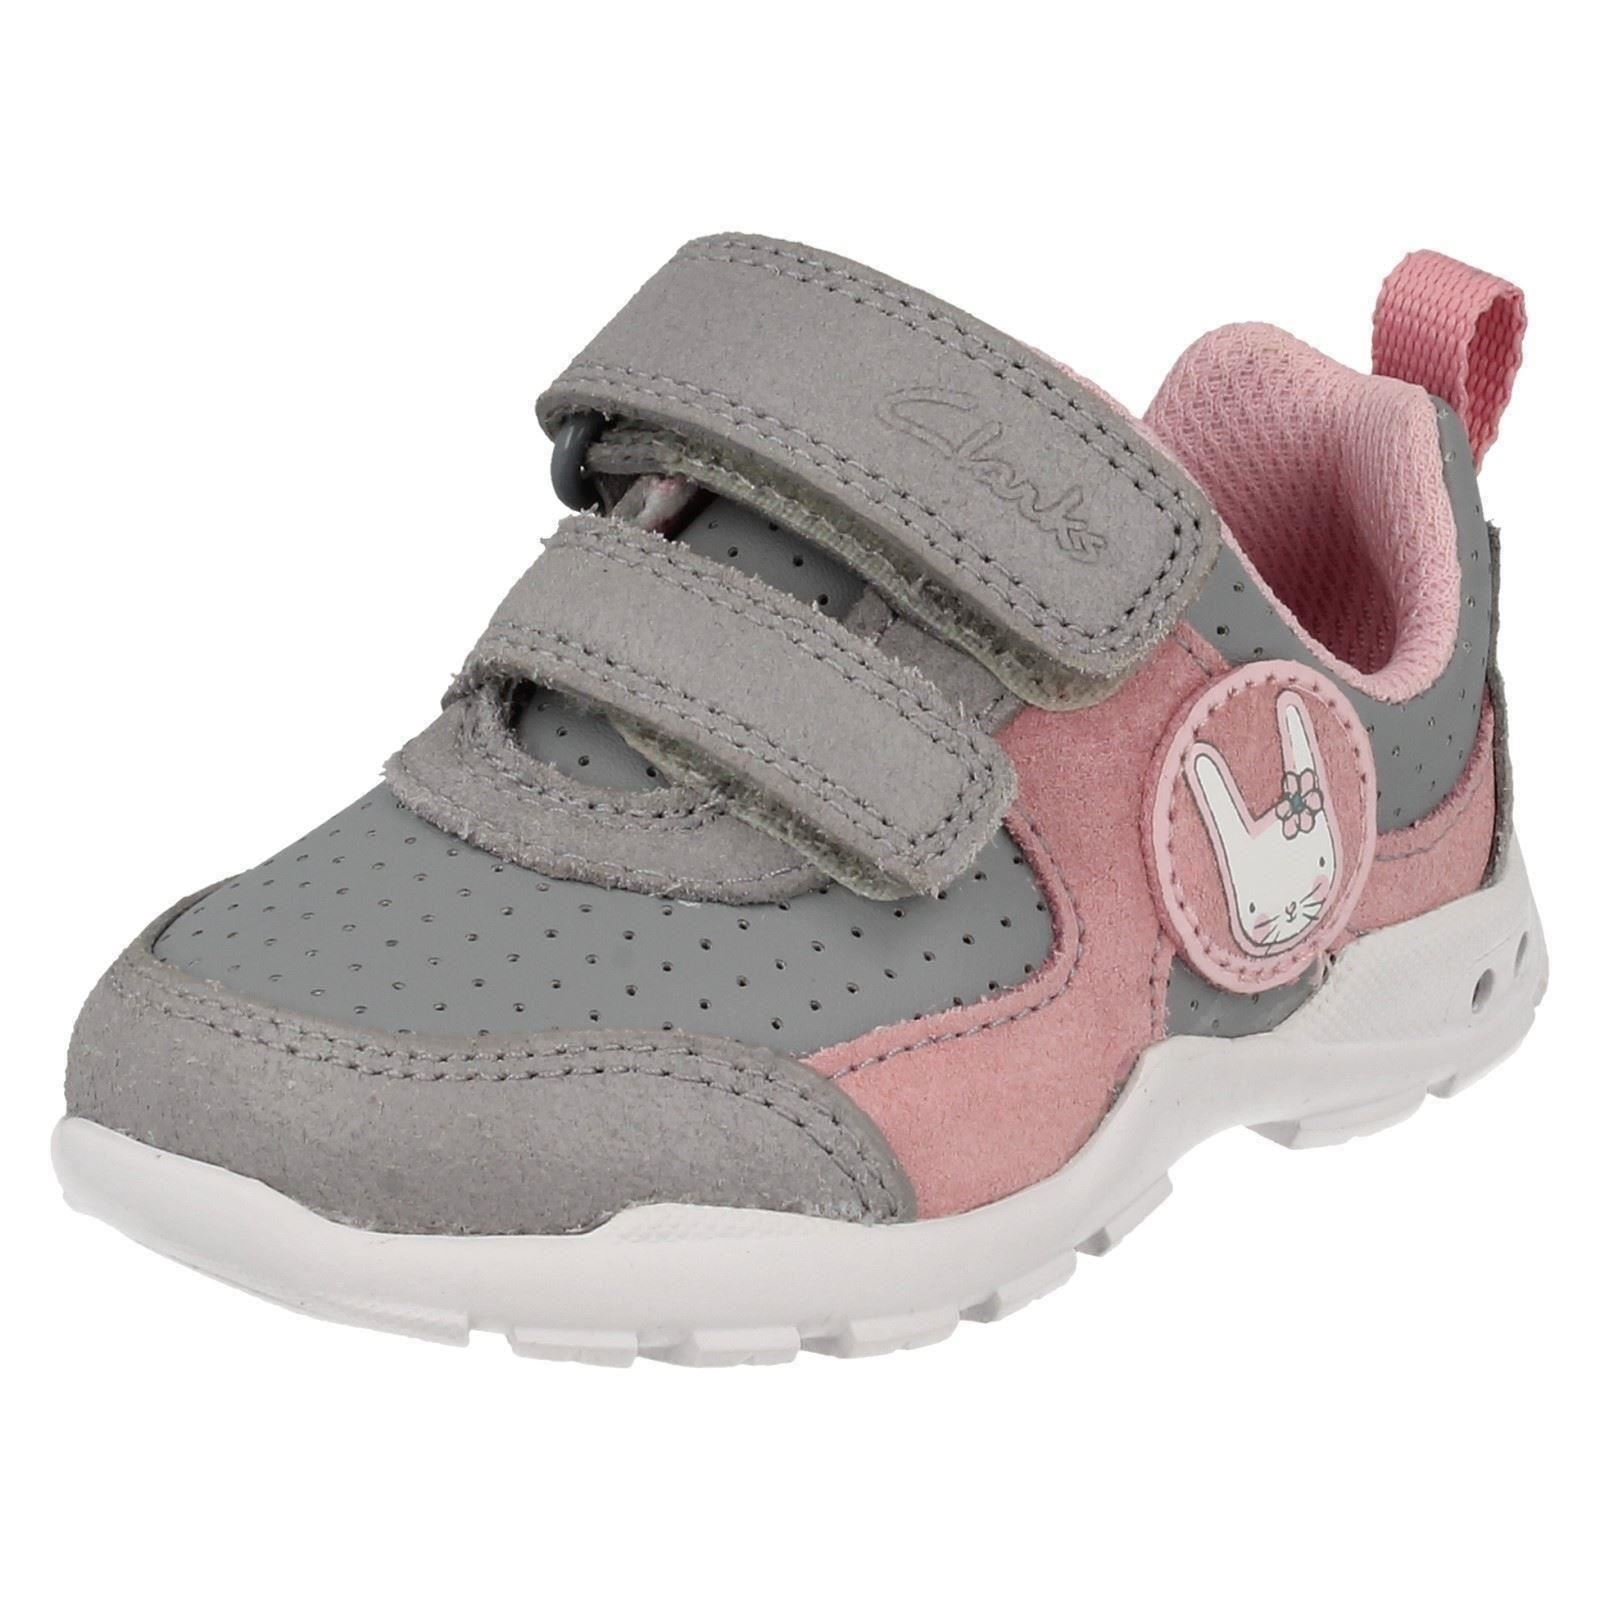 con luces gris Primeros Combi Girls Infant Wizz intermitentes Brite Clarks Gray entrenadores IT1Xw